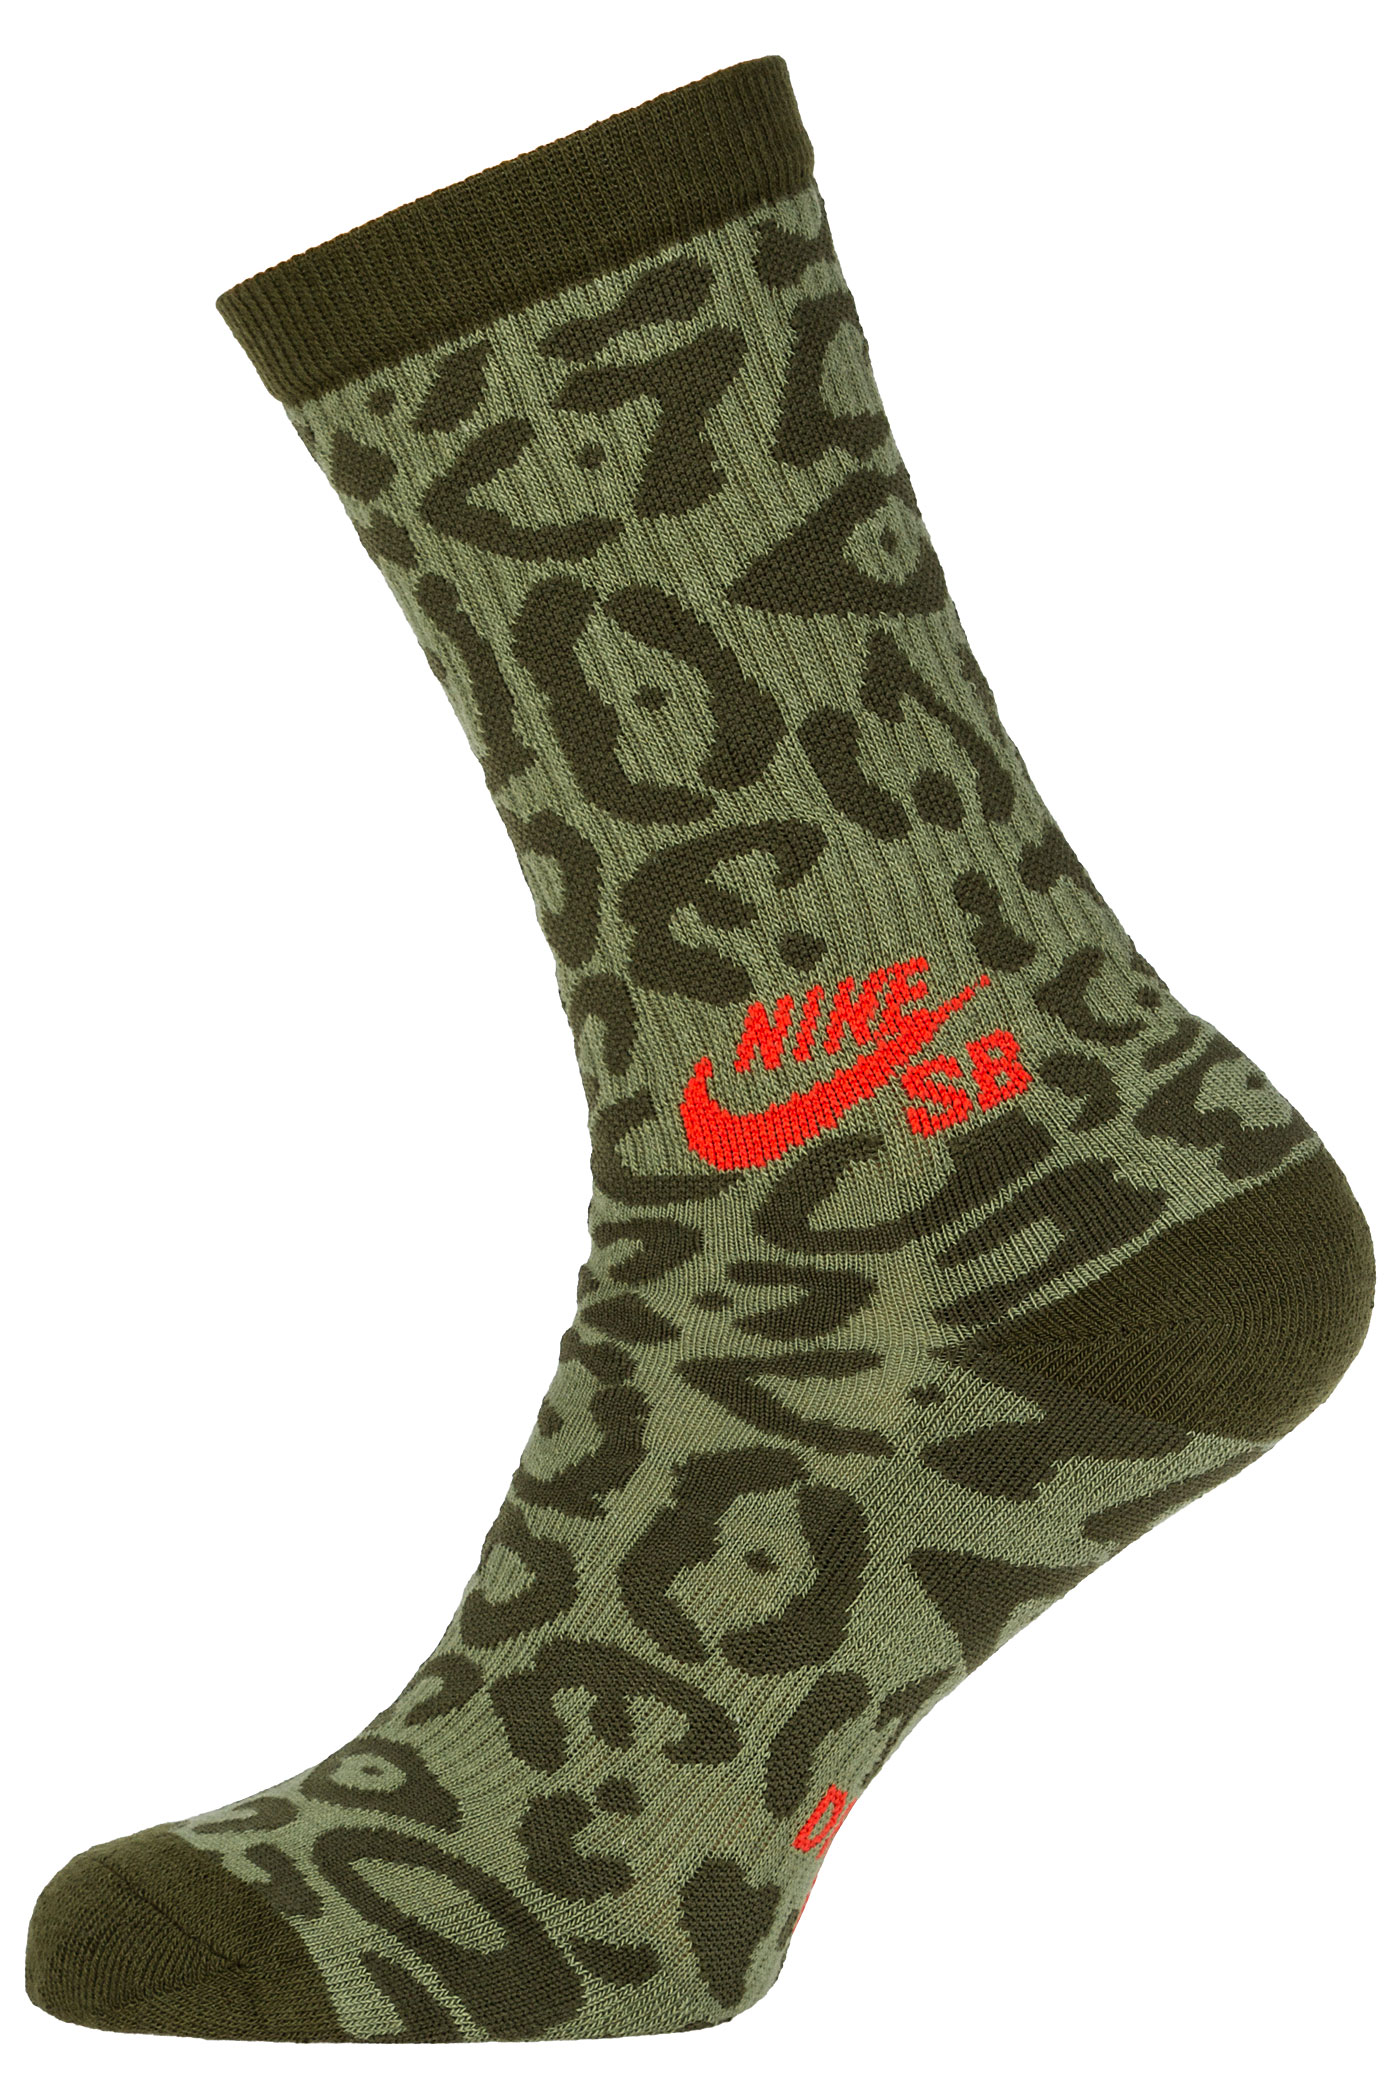 nike sb jaquar graphic socks palm green legion green buy. Black Bedroom Furniture Sets. Home Design Ideas